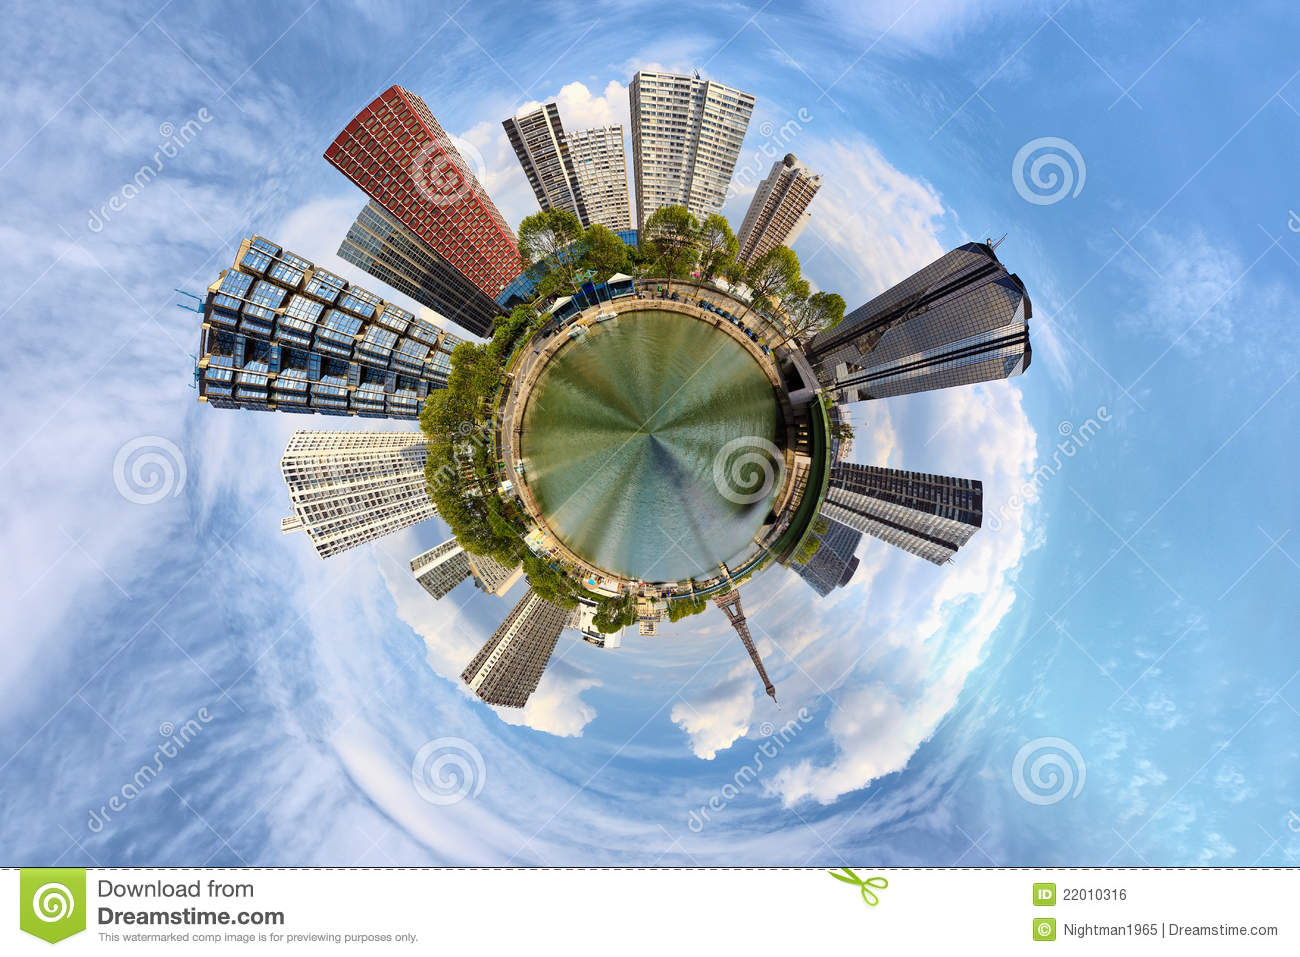 urbanization clipart images urbanization of the planet royalty stock image image 22010316